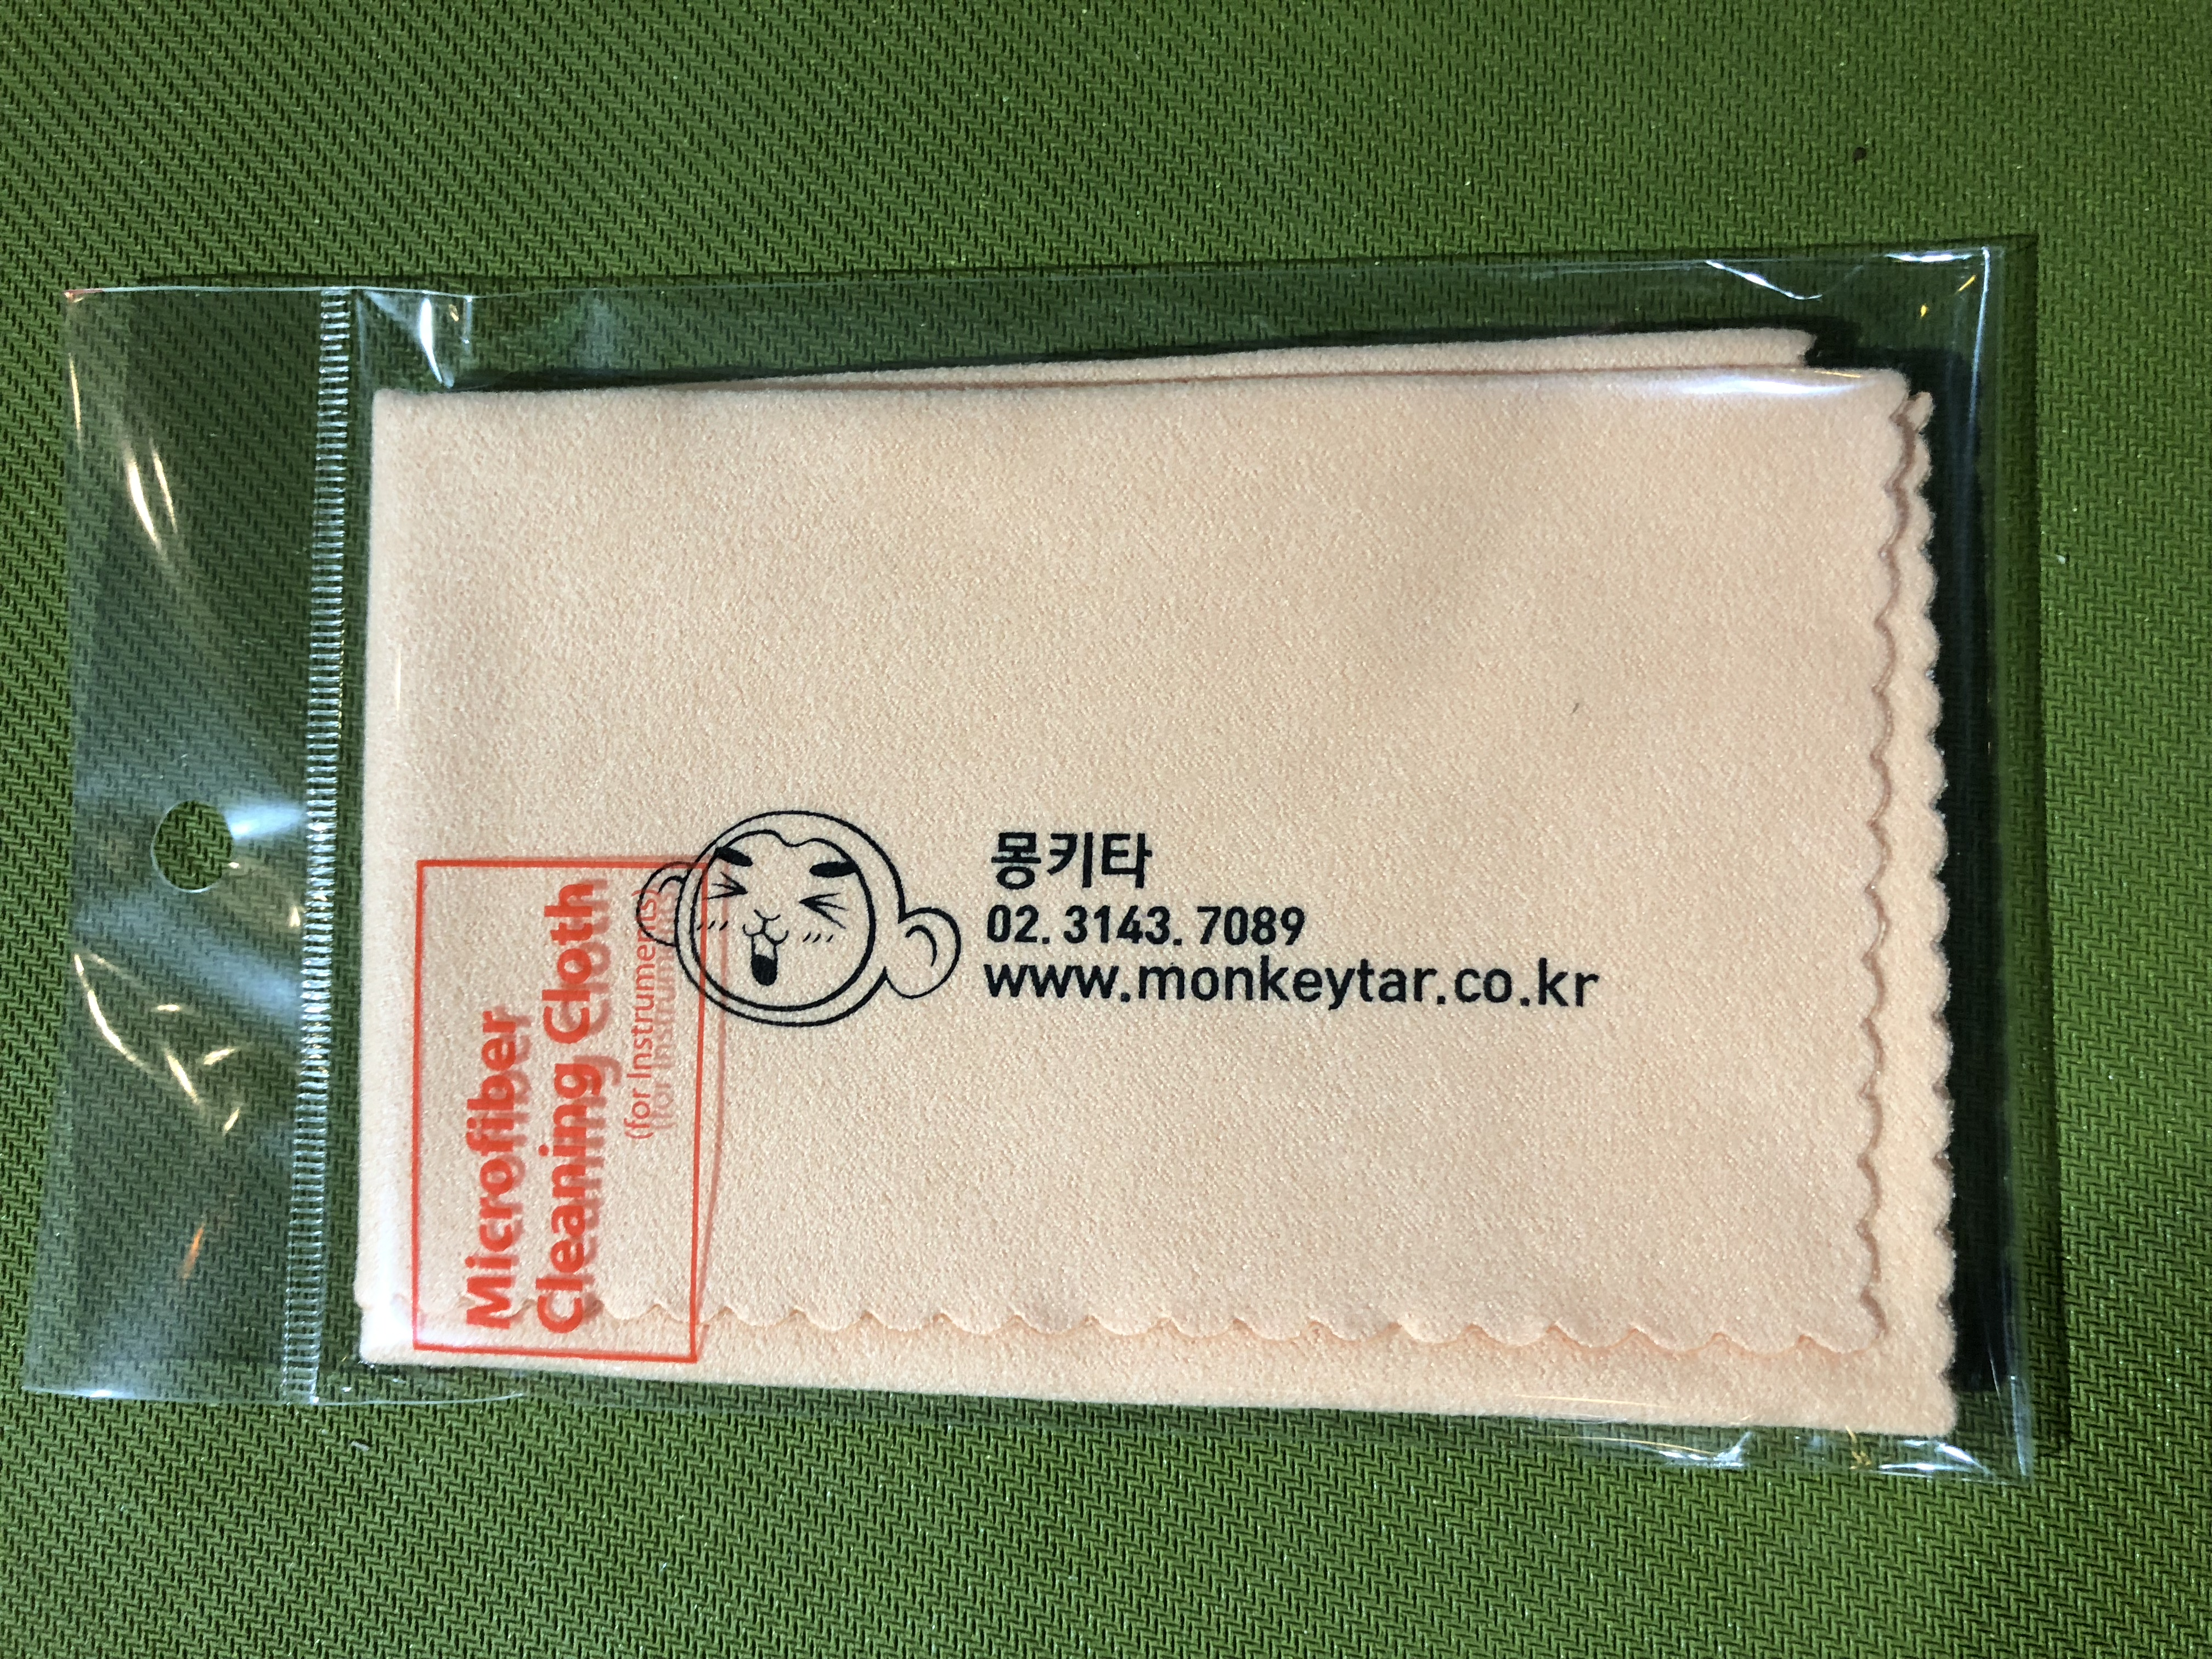 Microfiber Cleaning Cloth (극세사융) Orange